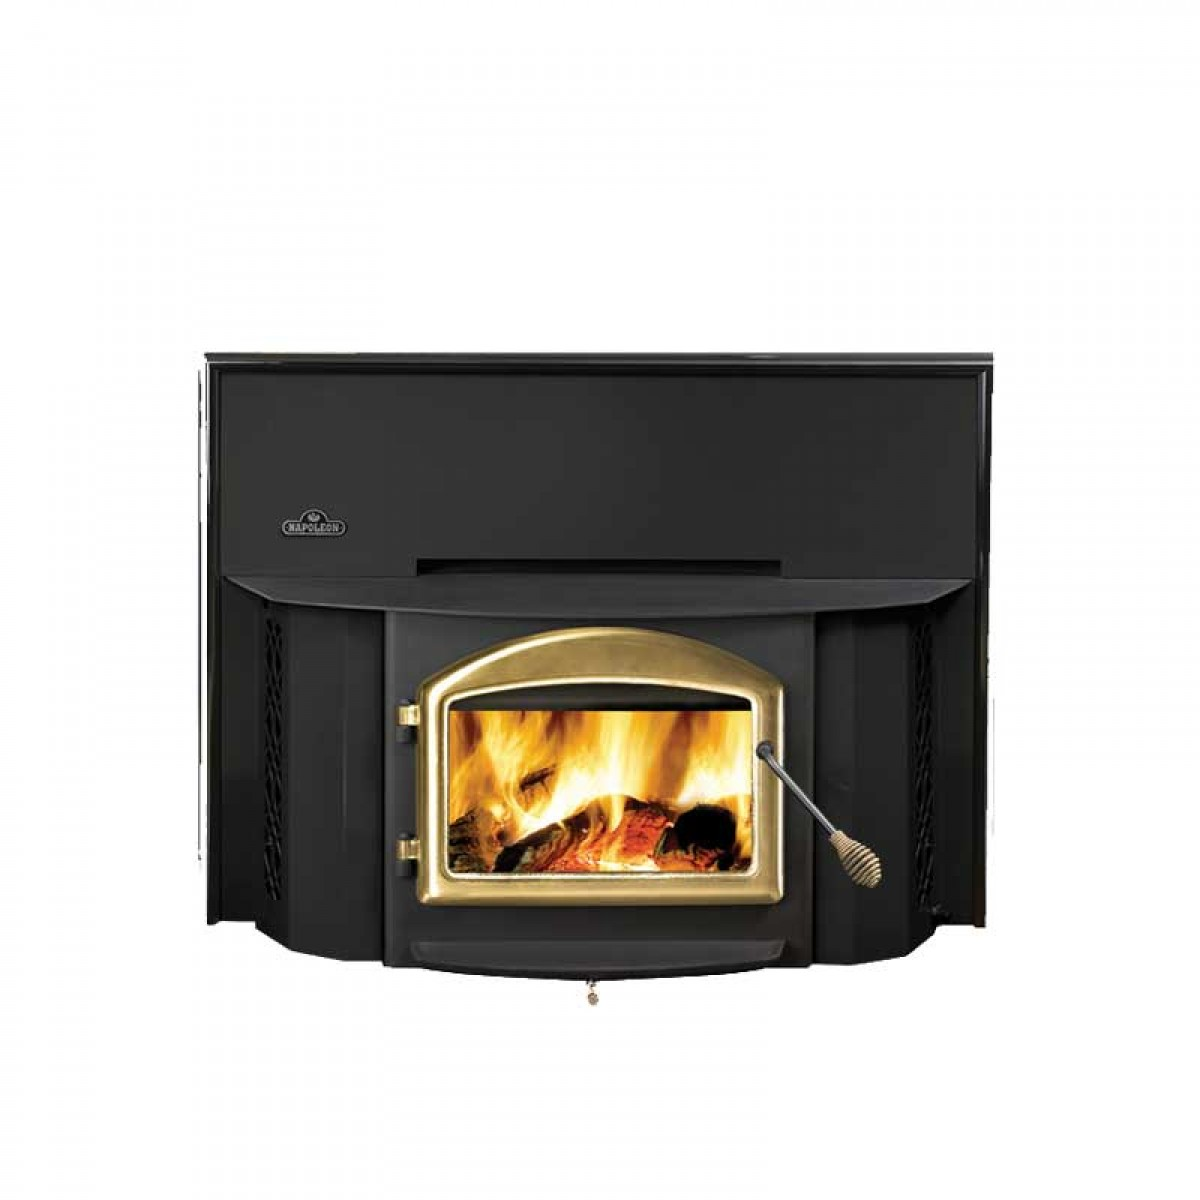 Napoleon Oakdale Epi 1402 Wood Burning Fireplace Insert At Ibuyfireplaces